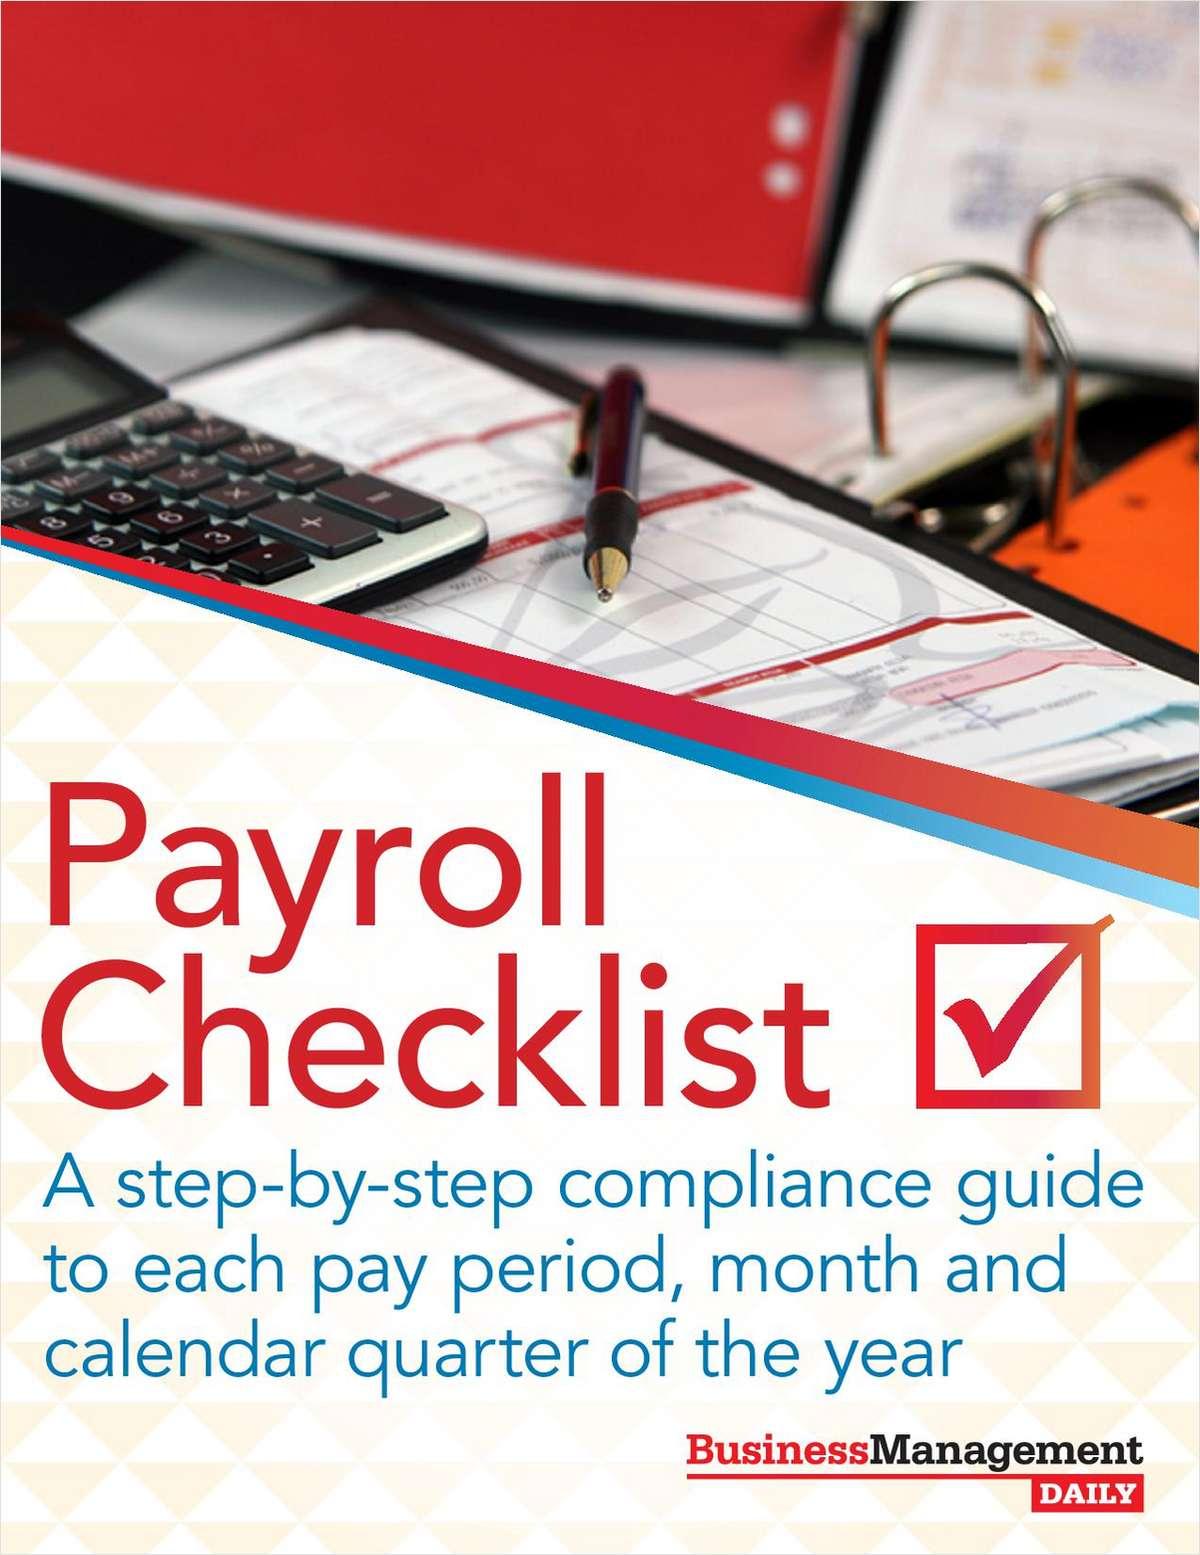 The Payroll Checklist    A step-by-step compliance guide to each pay period, month and calendar quarter of the year. Learn More >